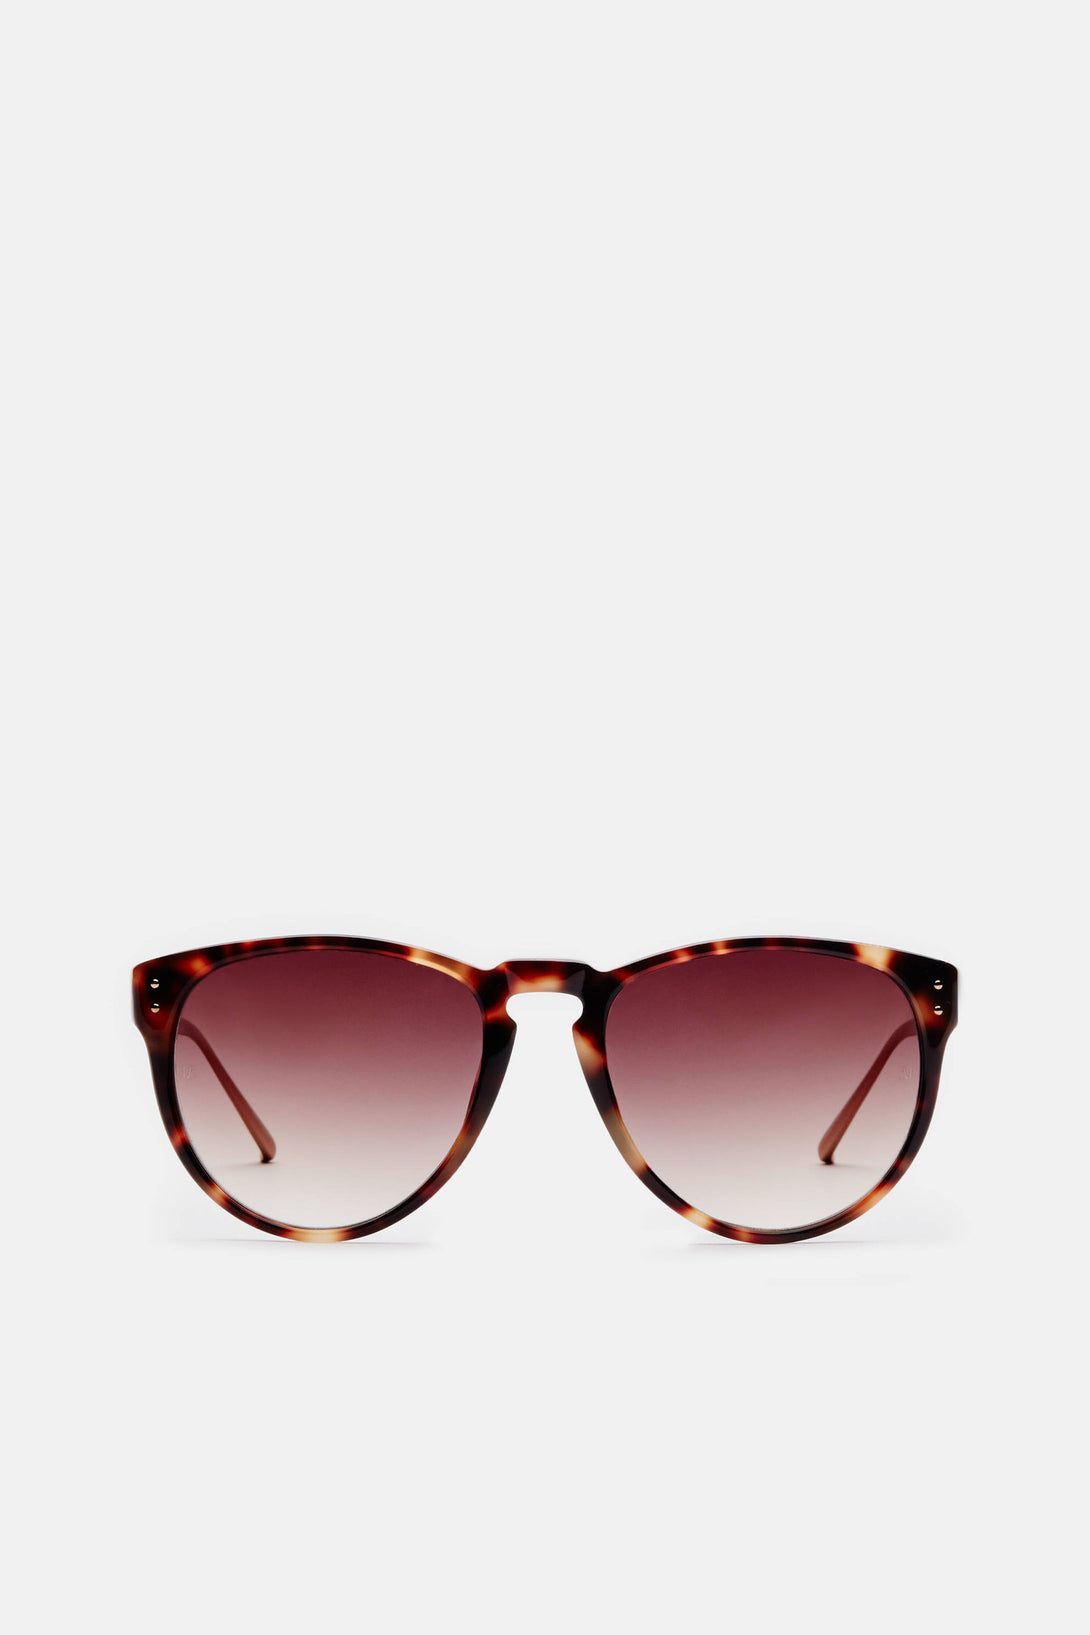 T-Shell/Rose Gold/Brown Grad Lens